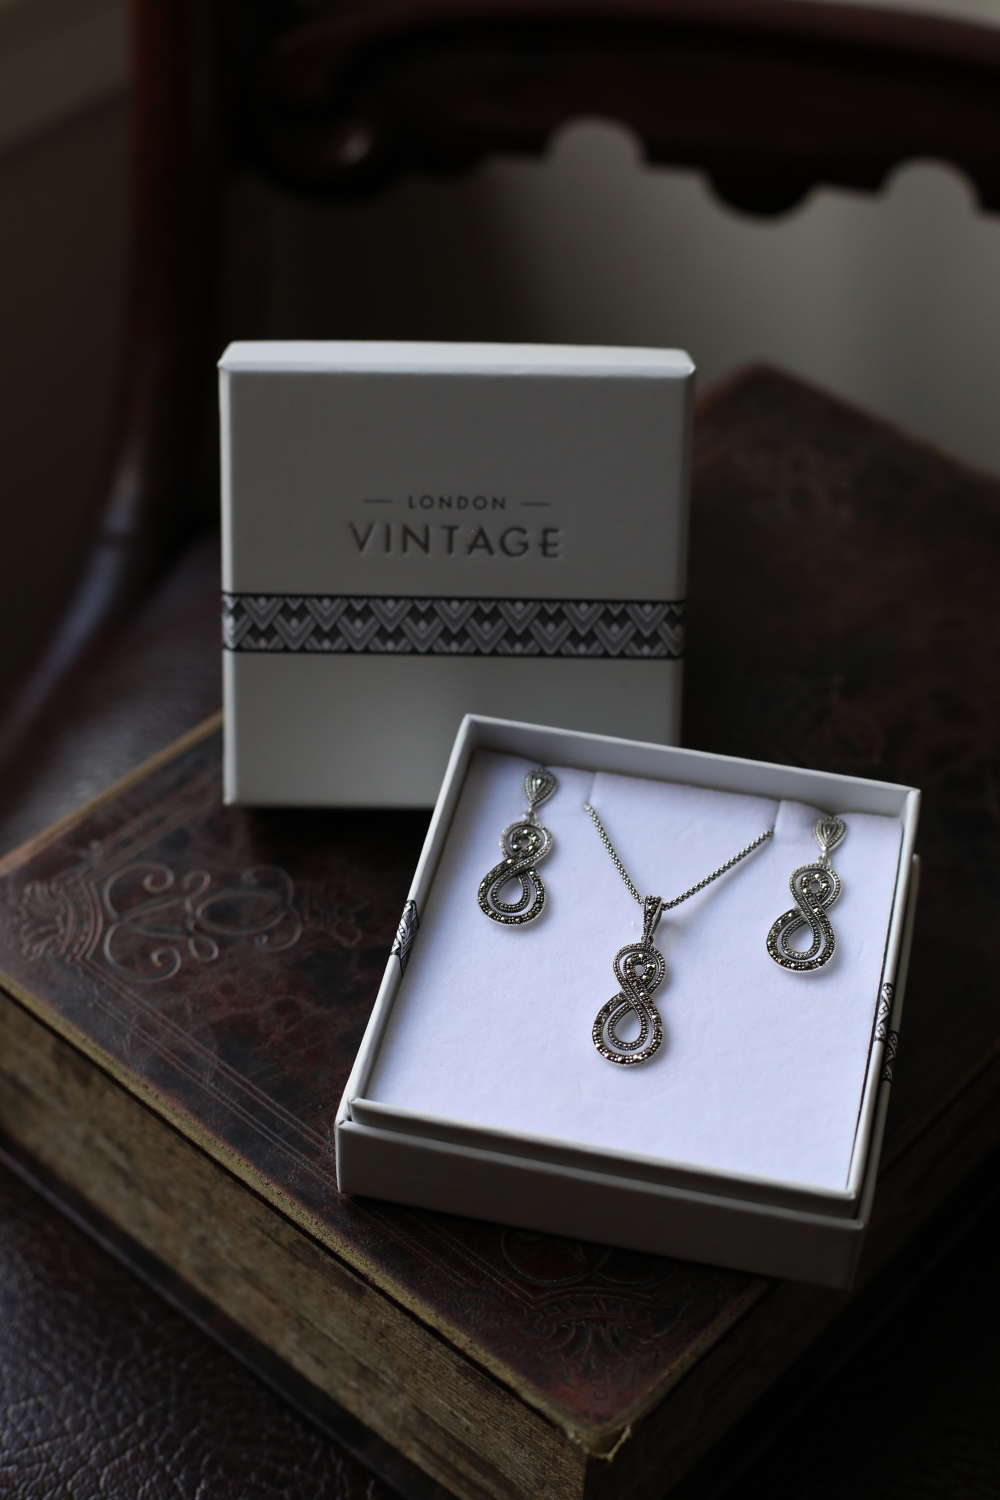 London Vintage - Silver & Marquisite Earring & Pendant Set